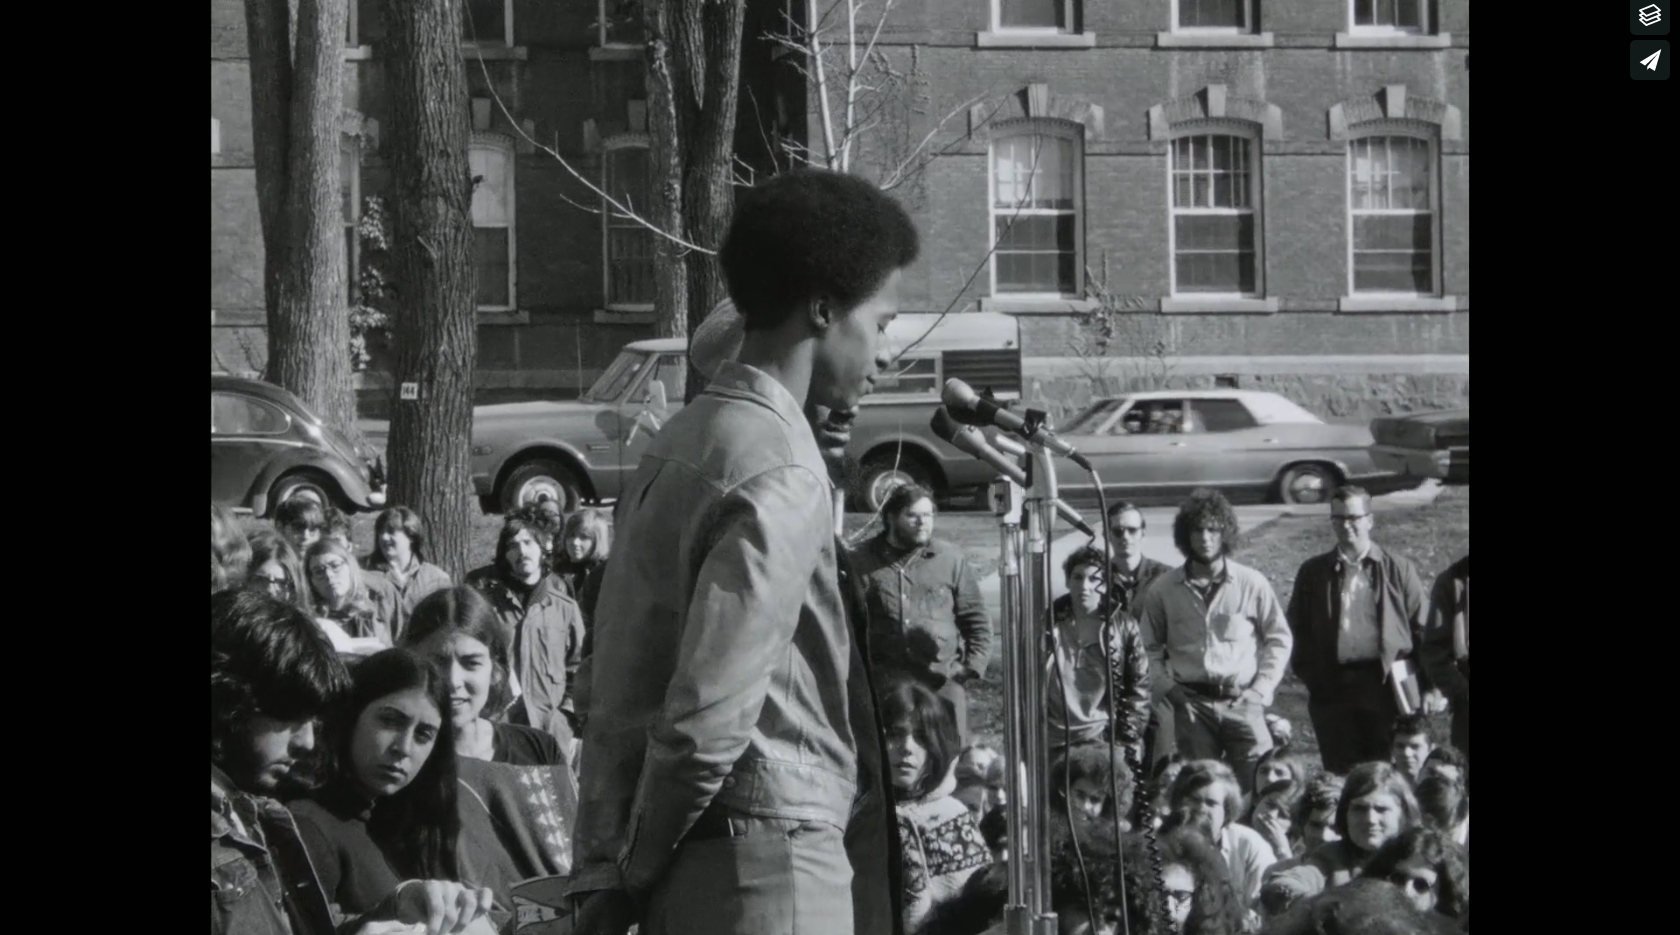 BLACK PANTHER RALLY AT THE UNIVERSITY OF VERMONT   16mm Footage from early 1970s - Black Panther rally on the University of Vermont green. B-roll footage, no audio, B&W     Click the image to view